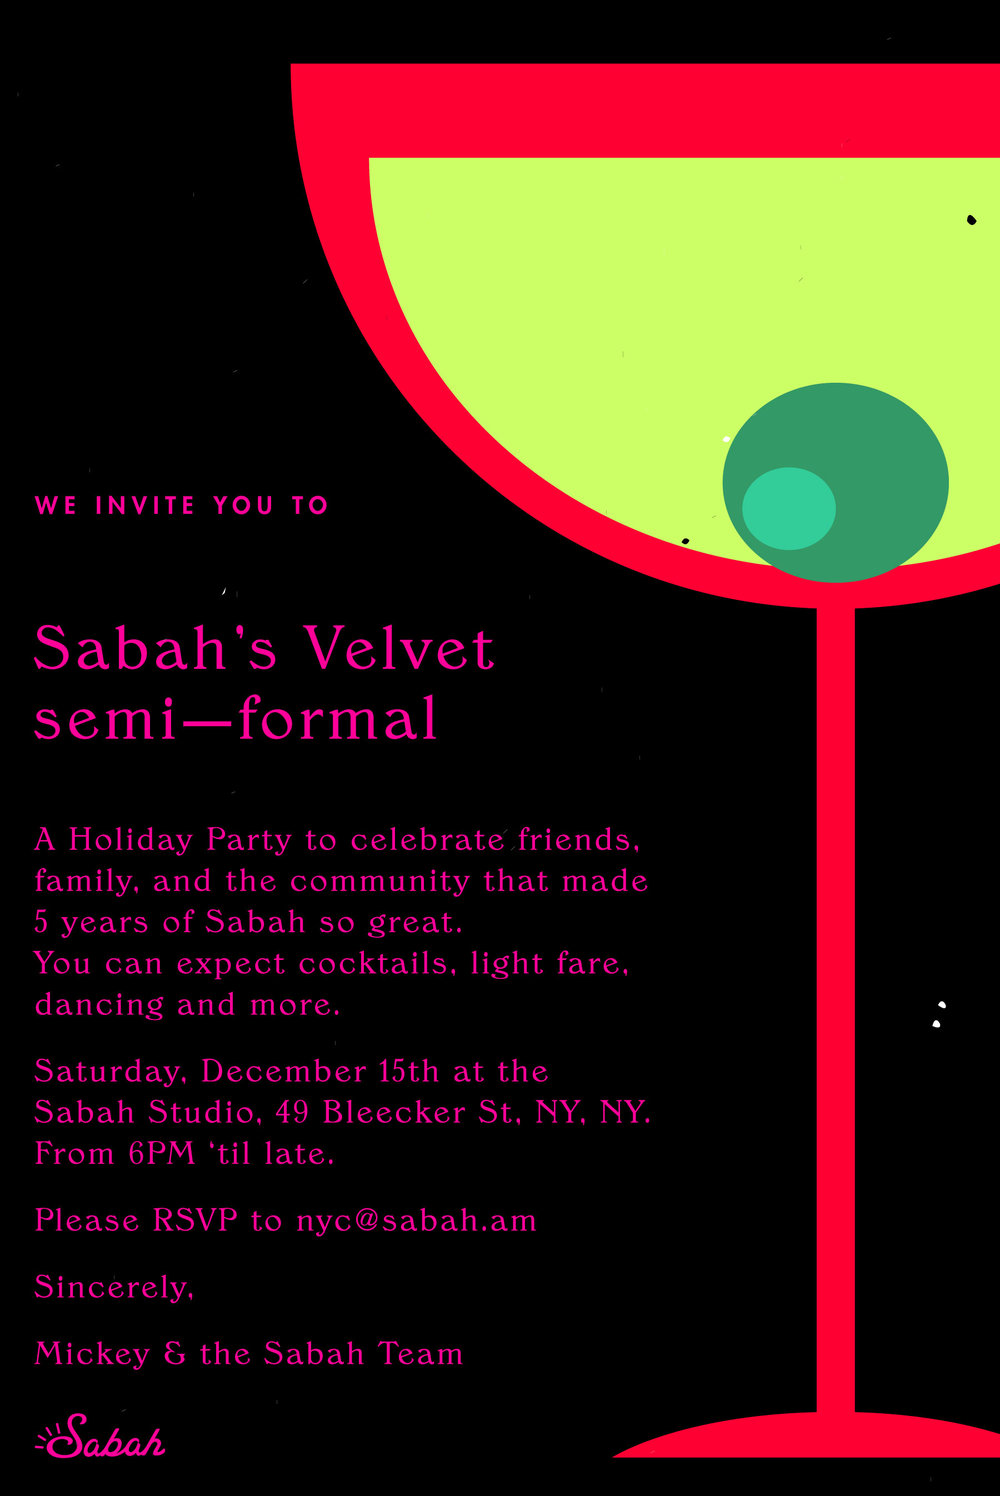 Sabah-Bleecker-Velvet-Semi-Formal-Dec2018.jpg